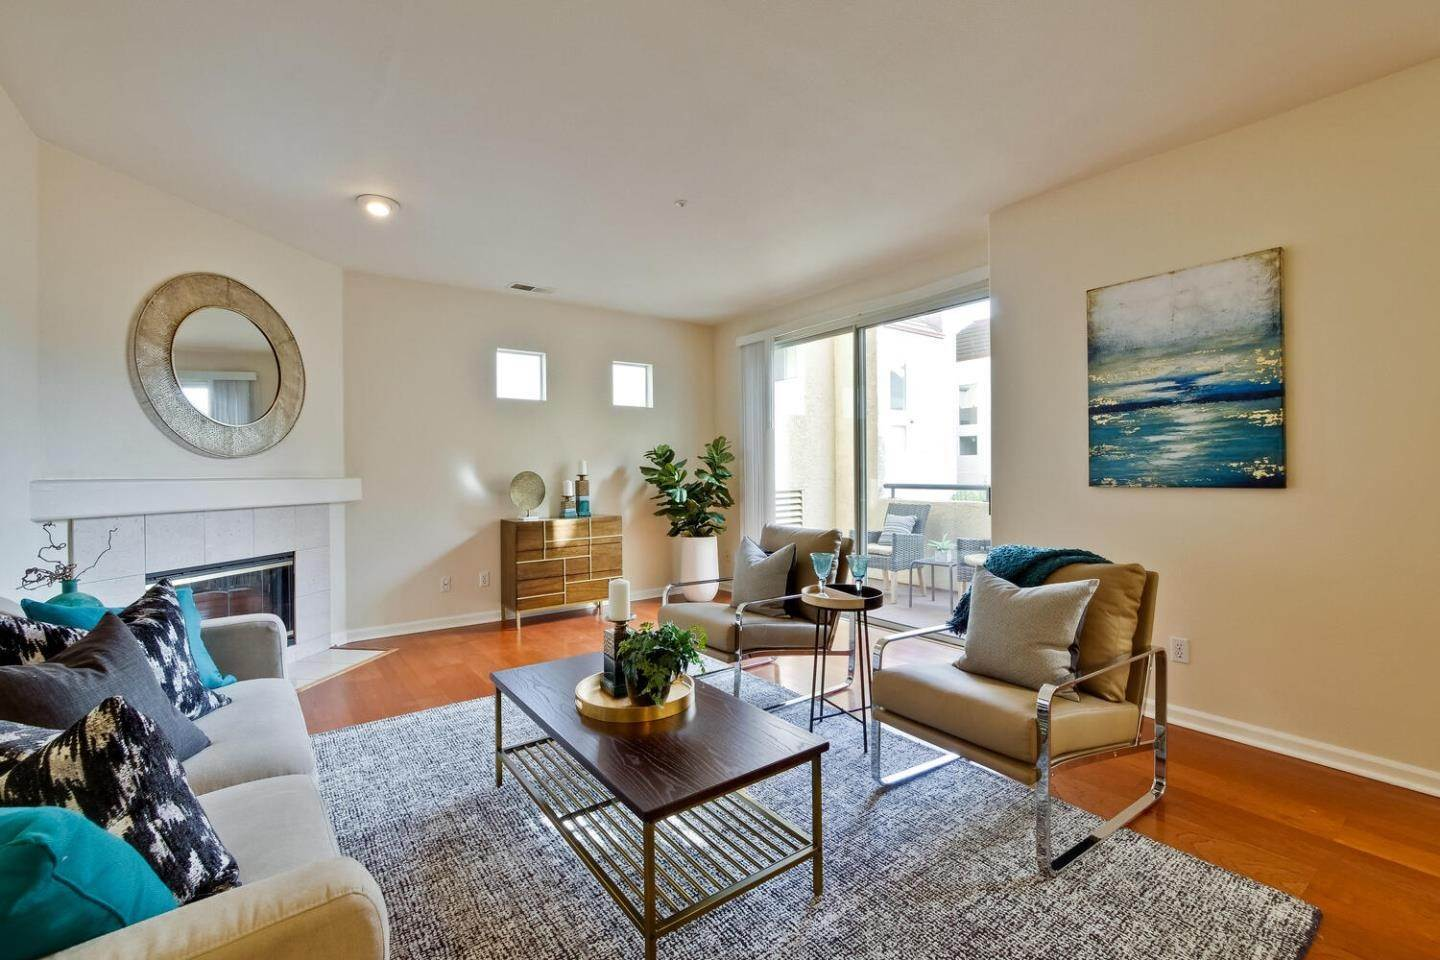 Condominiums for Sale at 2557 Park Boulevard Palo Alto, California 94306 United States